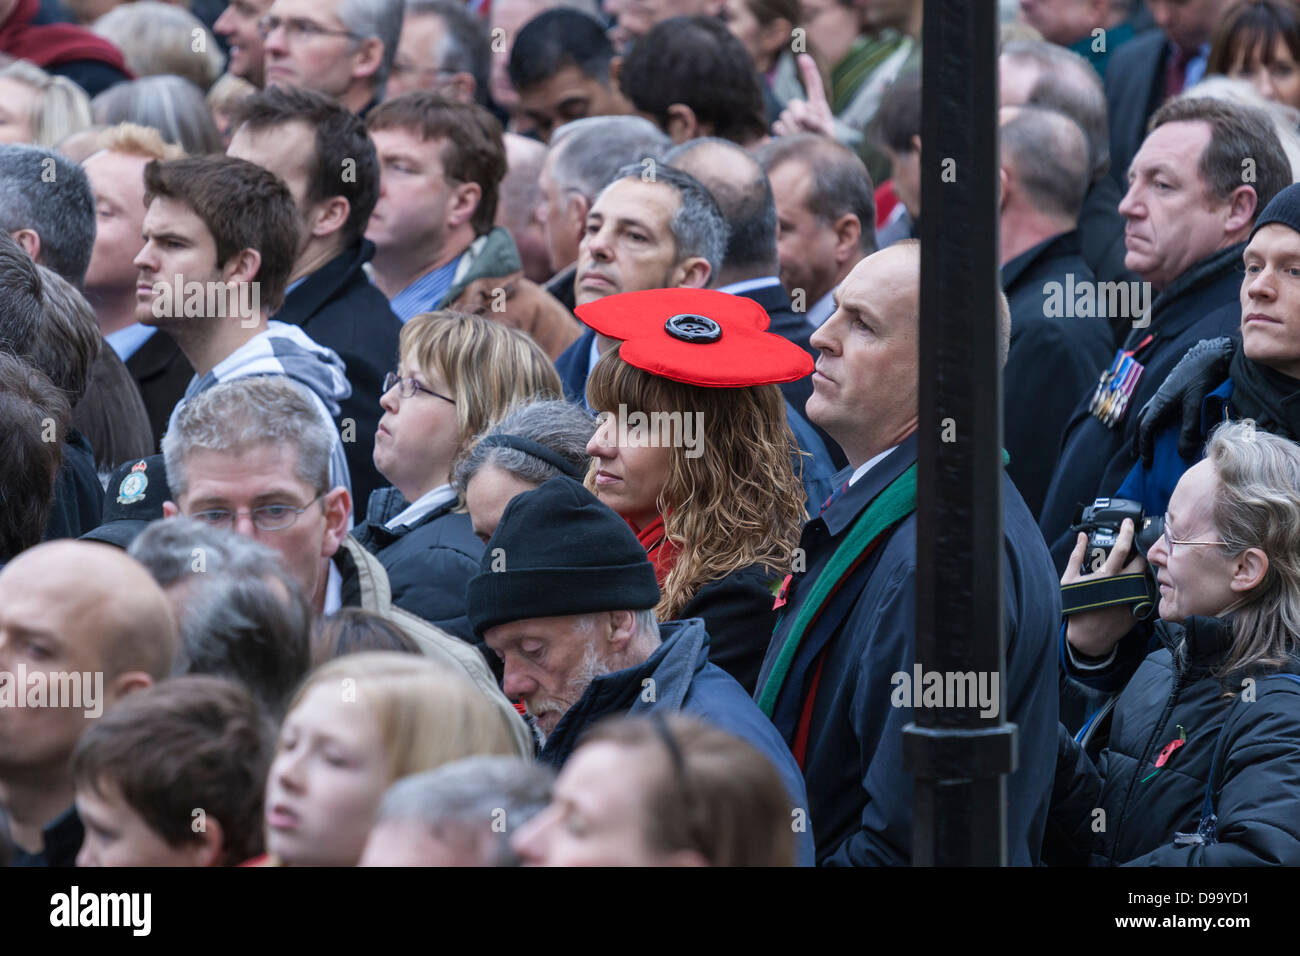 Crowd at the Cenotaph in Whitehall, London on Remembrance Sunday with a woman wearing a distinctive red poppy hat - Stock Image